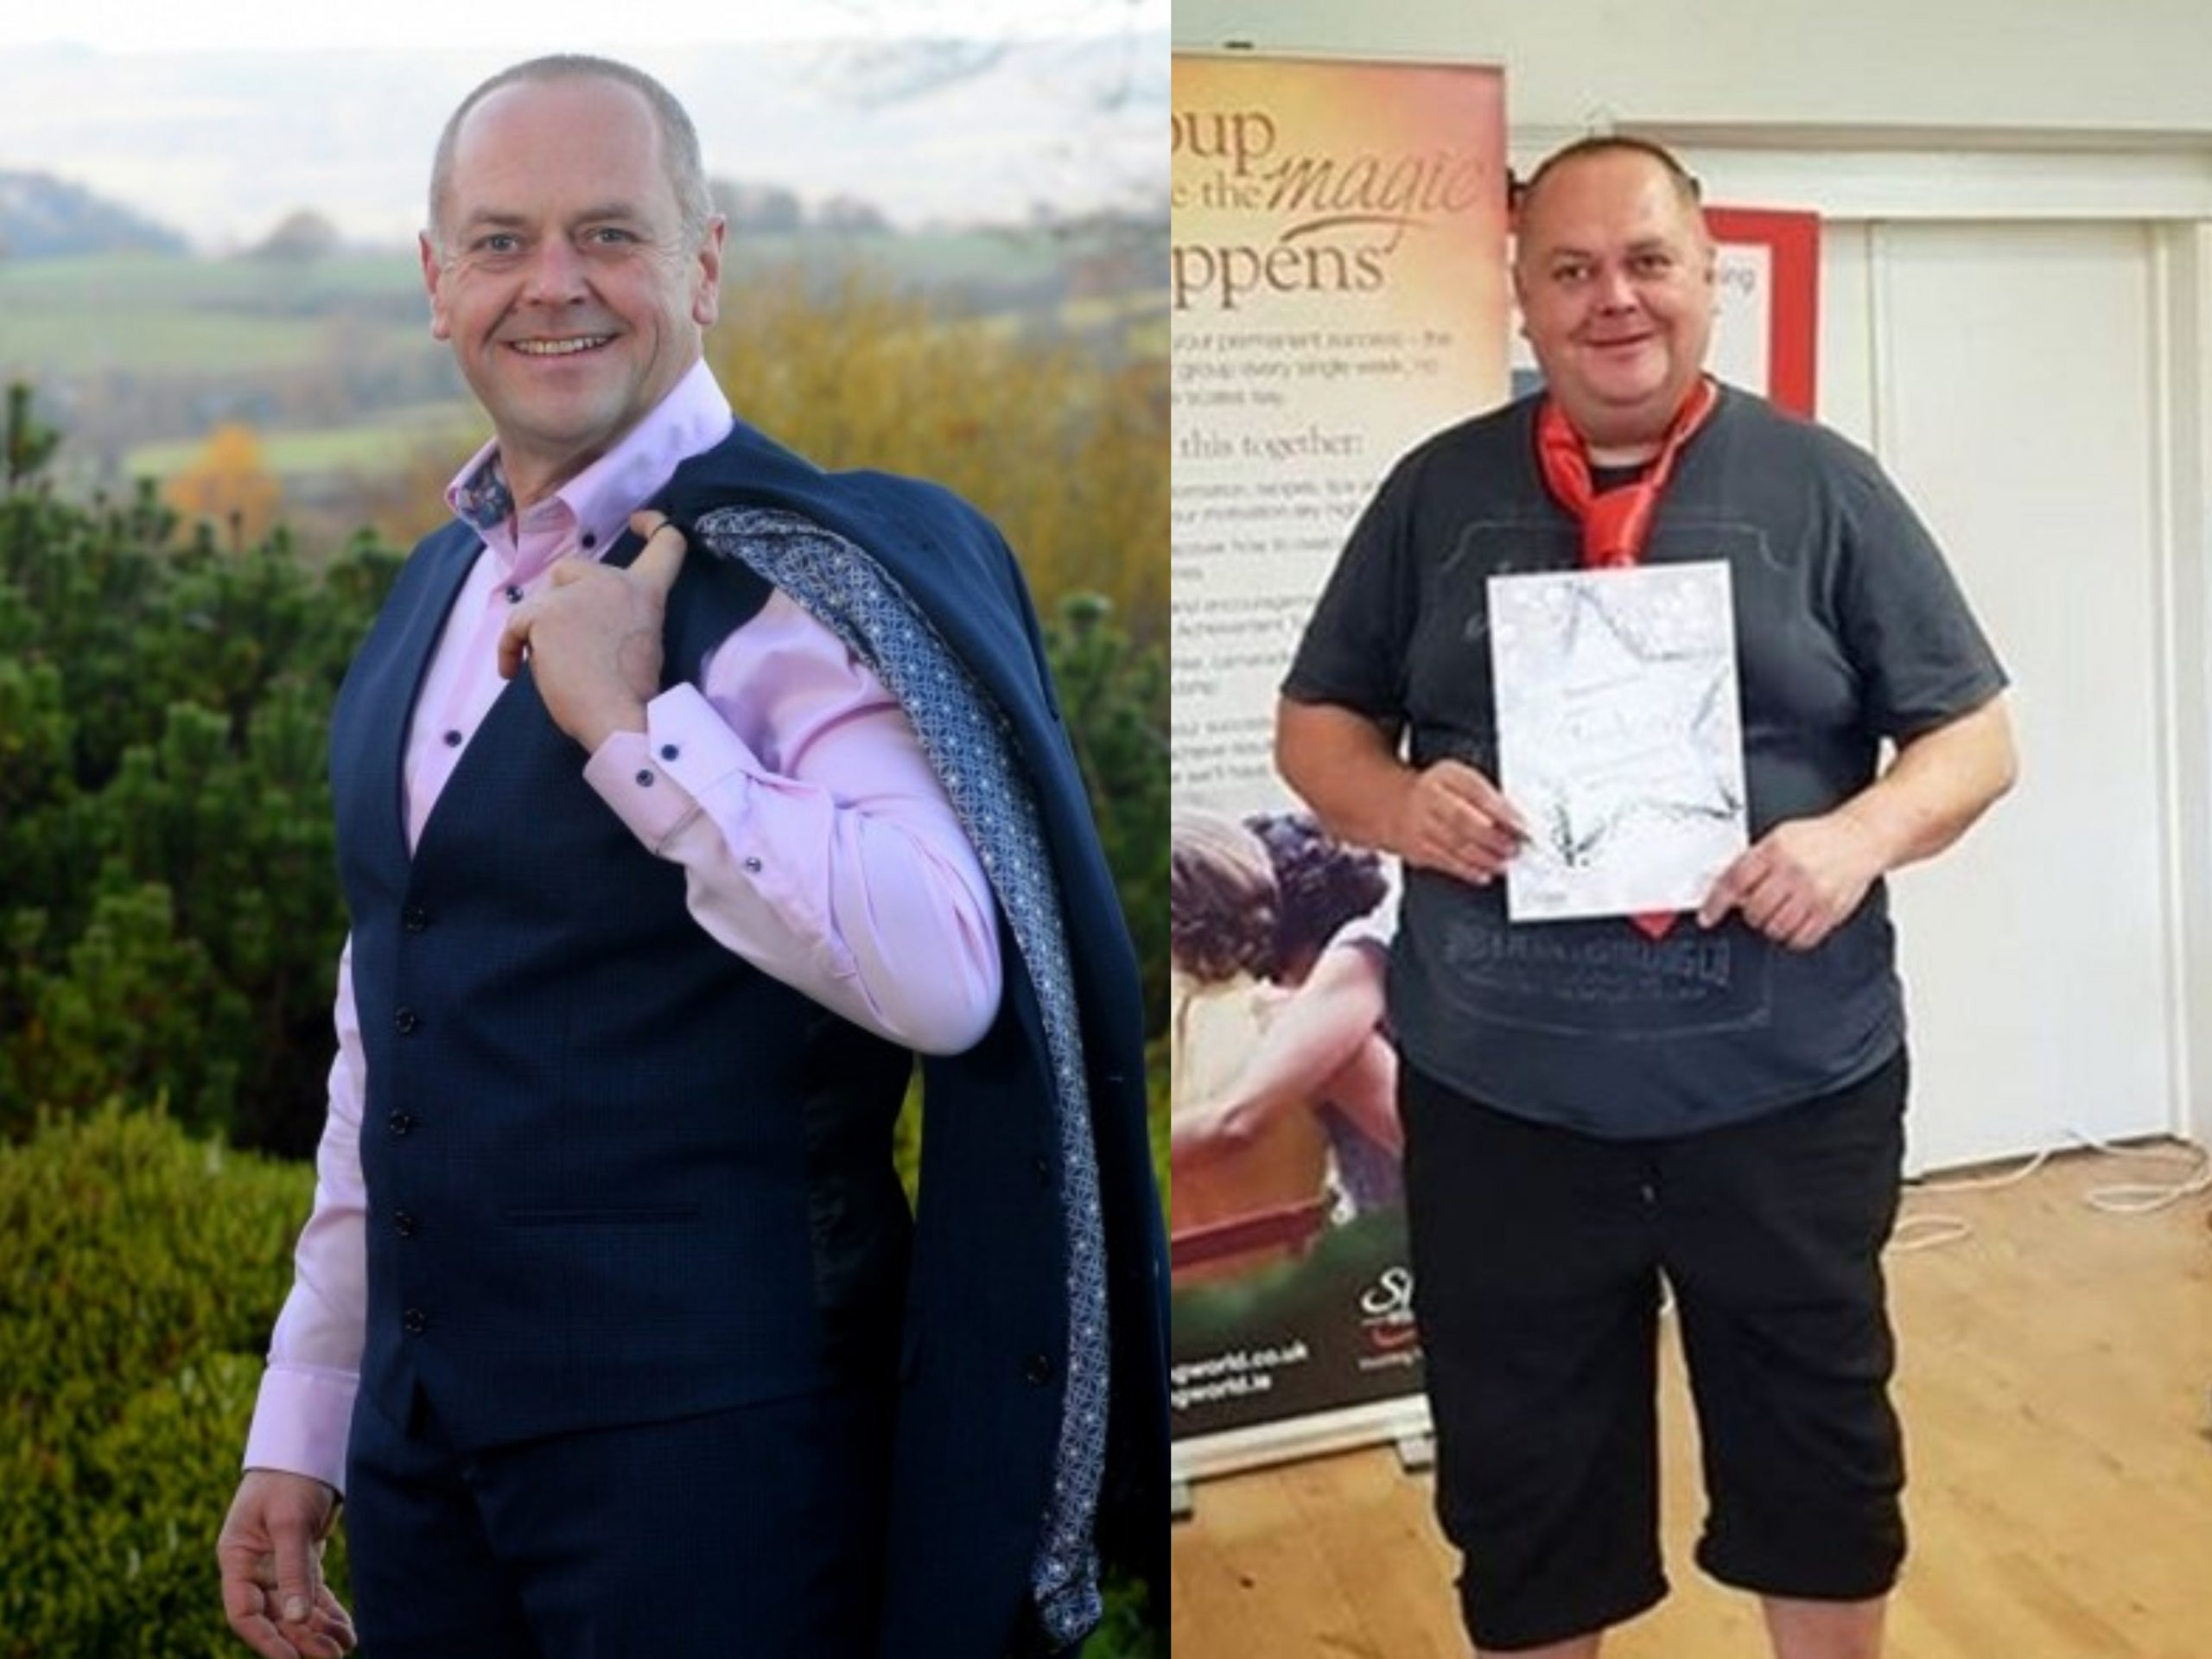 SW transformation Story: Jason keeps on trucking after 12½st weight loss